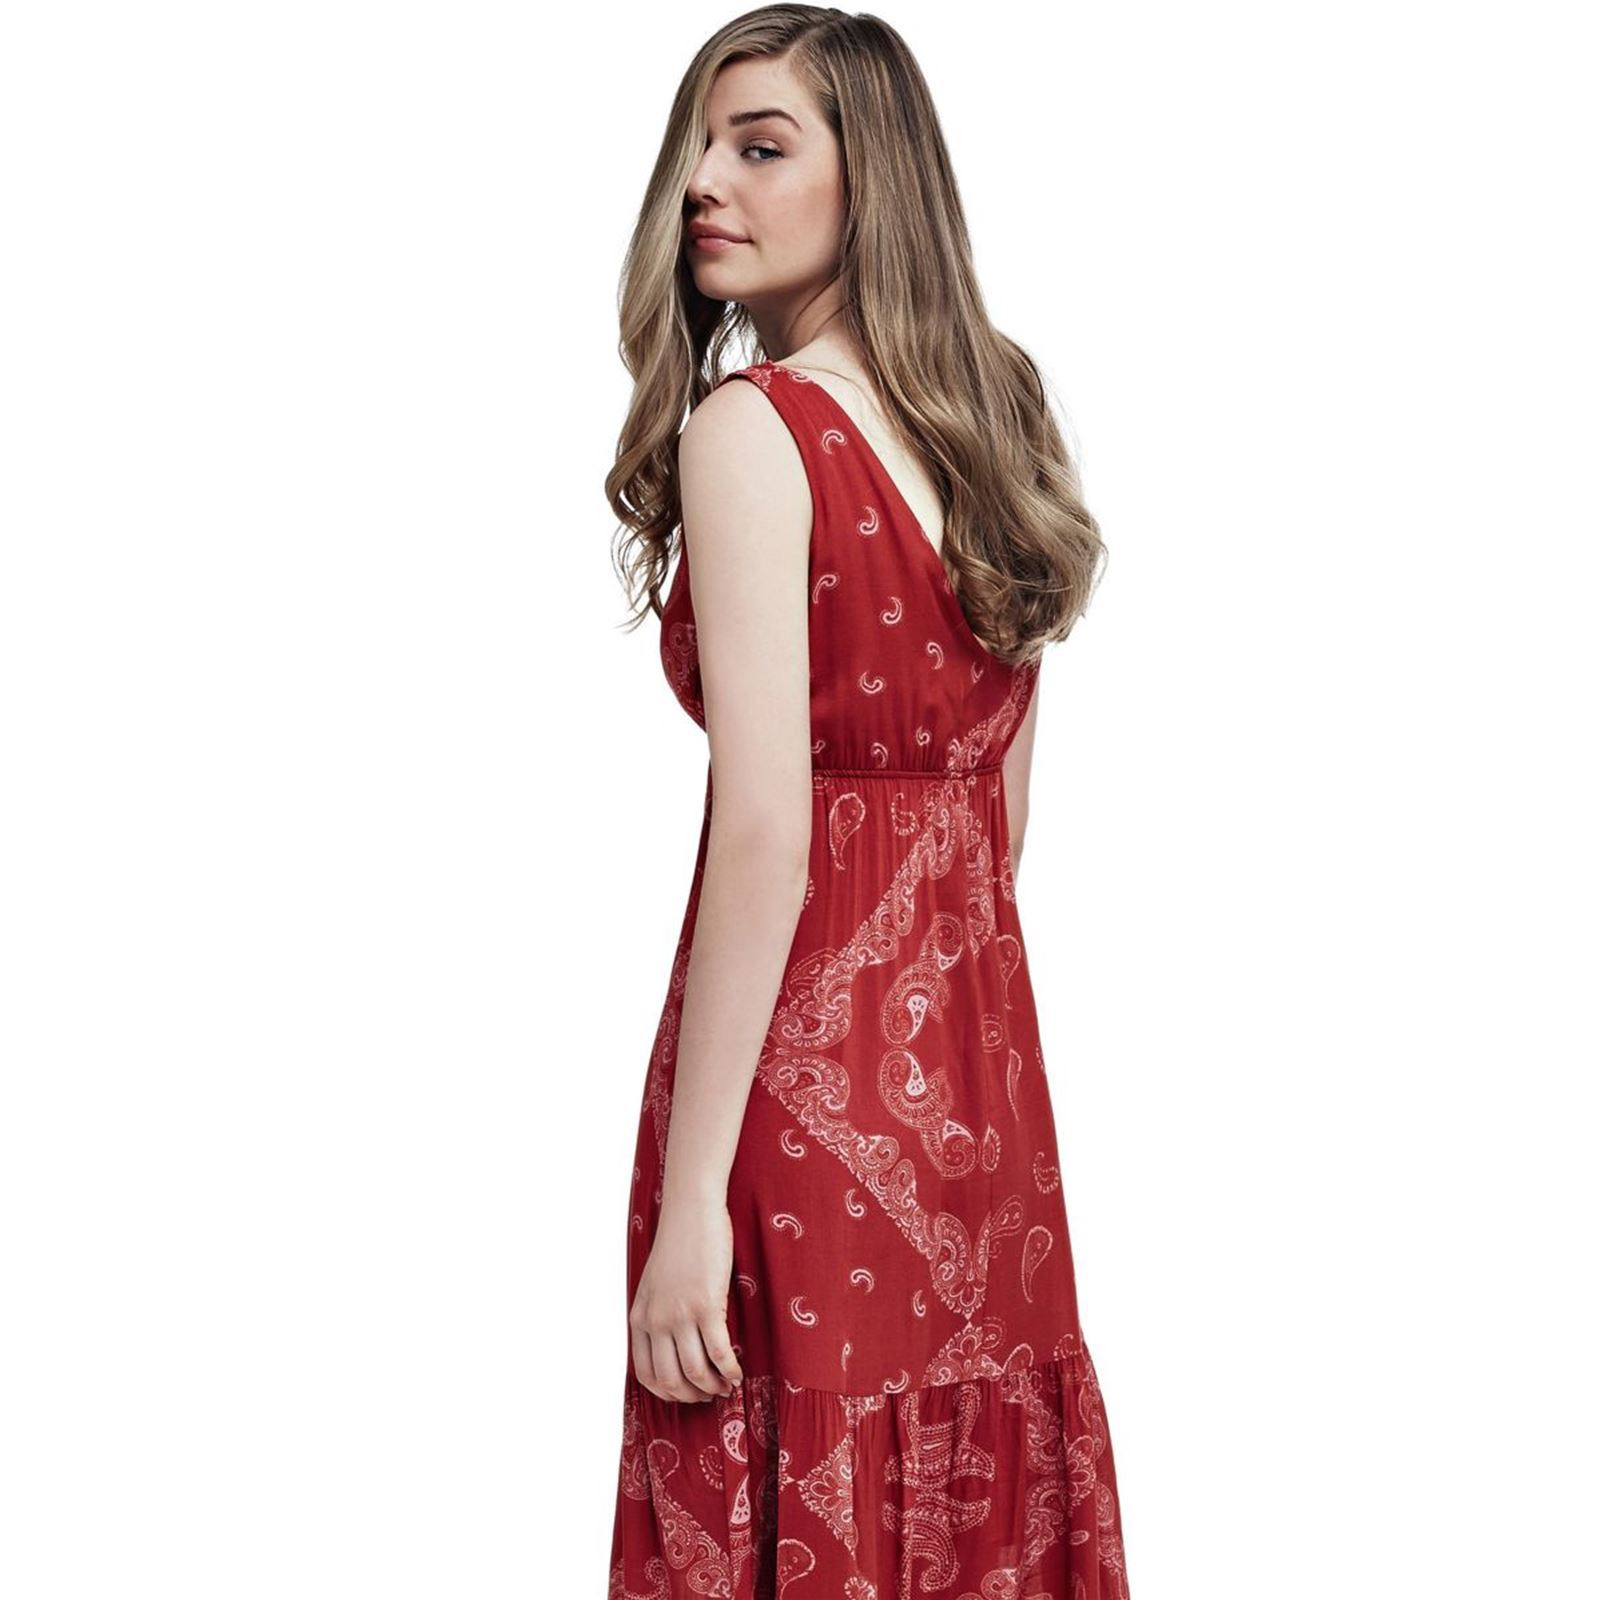 Guess Robe fluide - rouge   BrandAlley 6e5f0c41aaa9